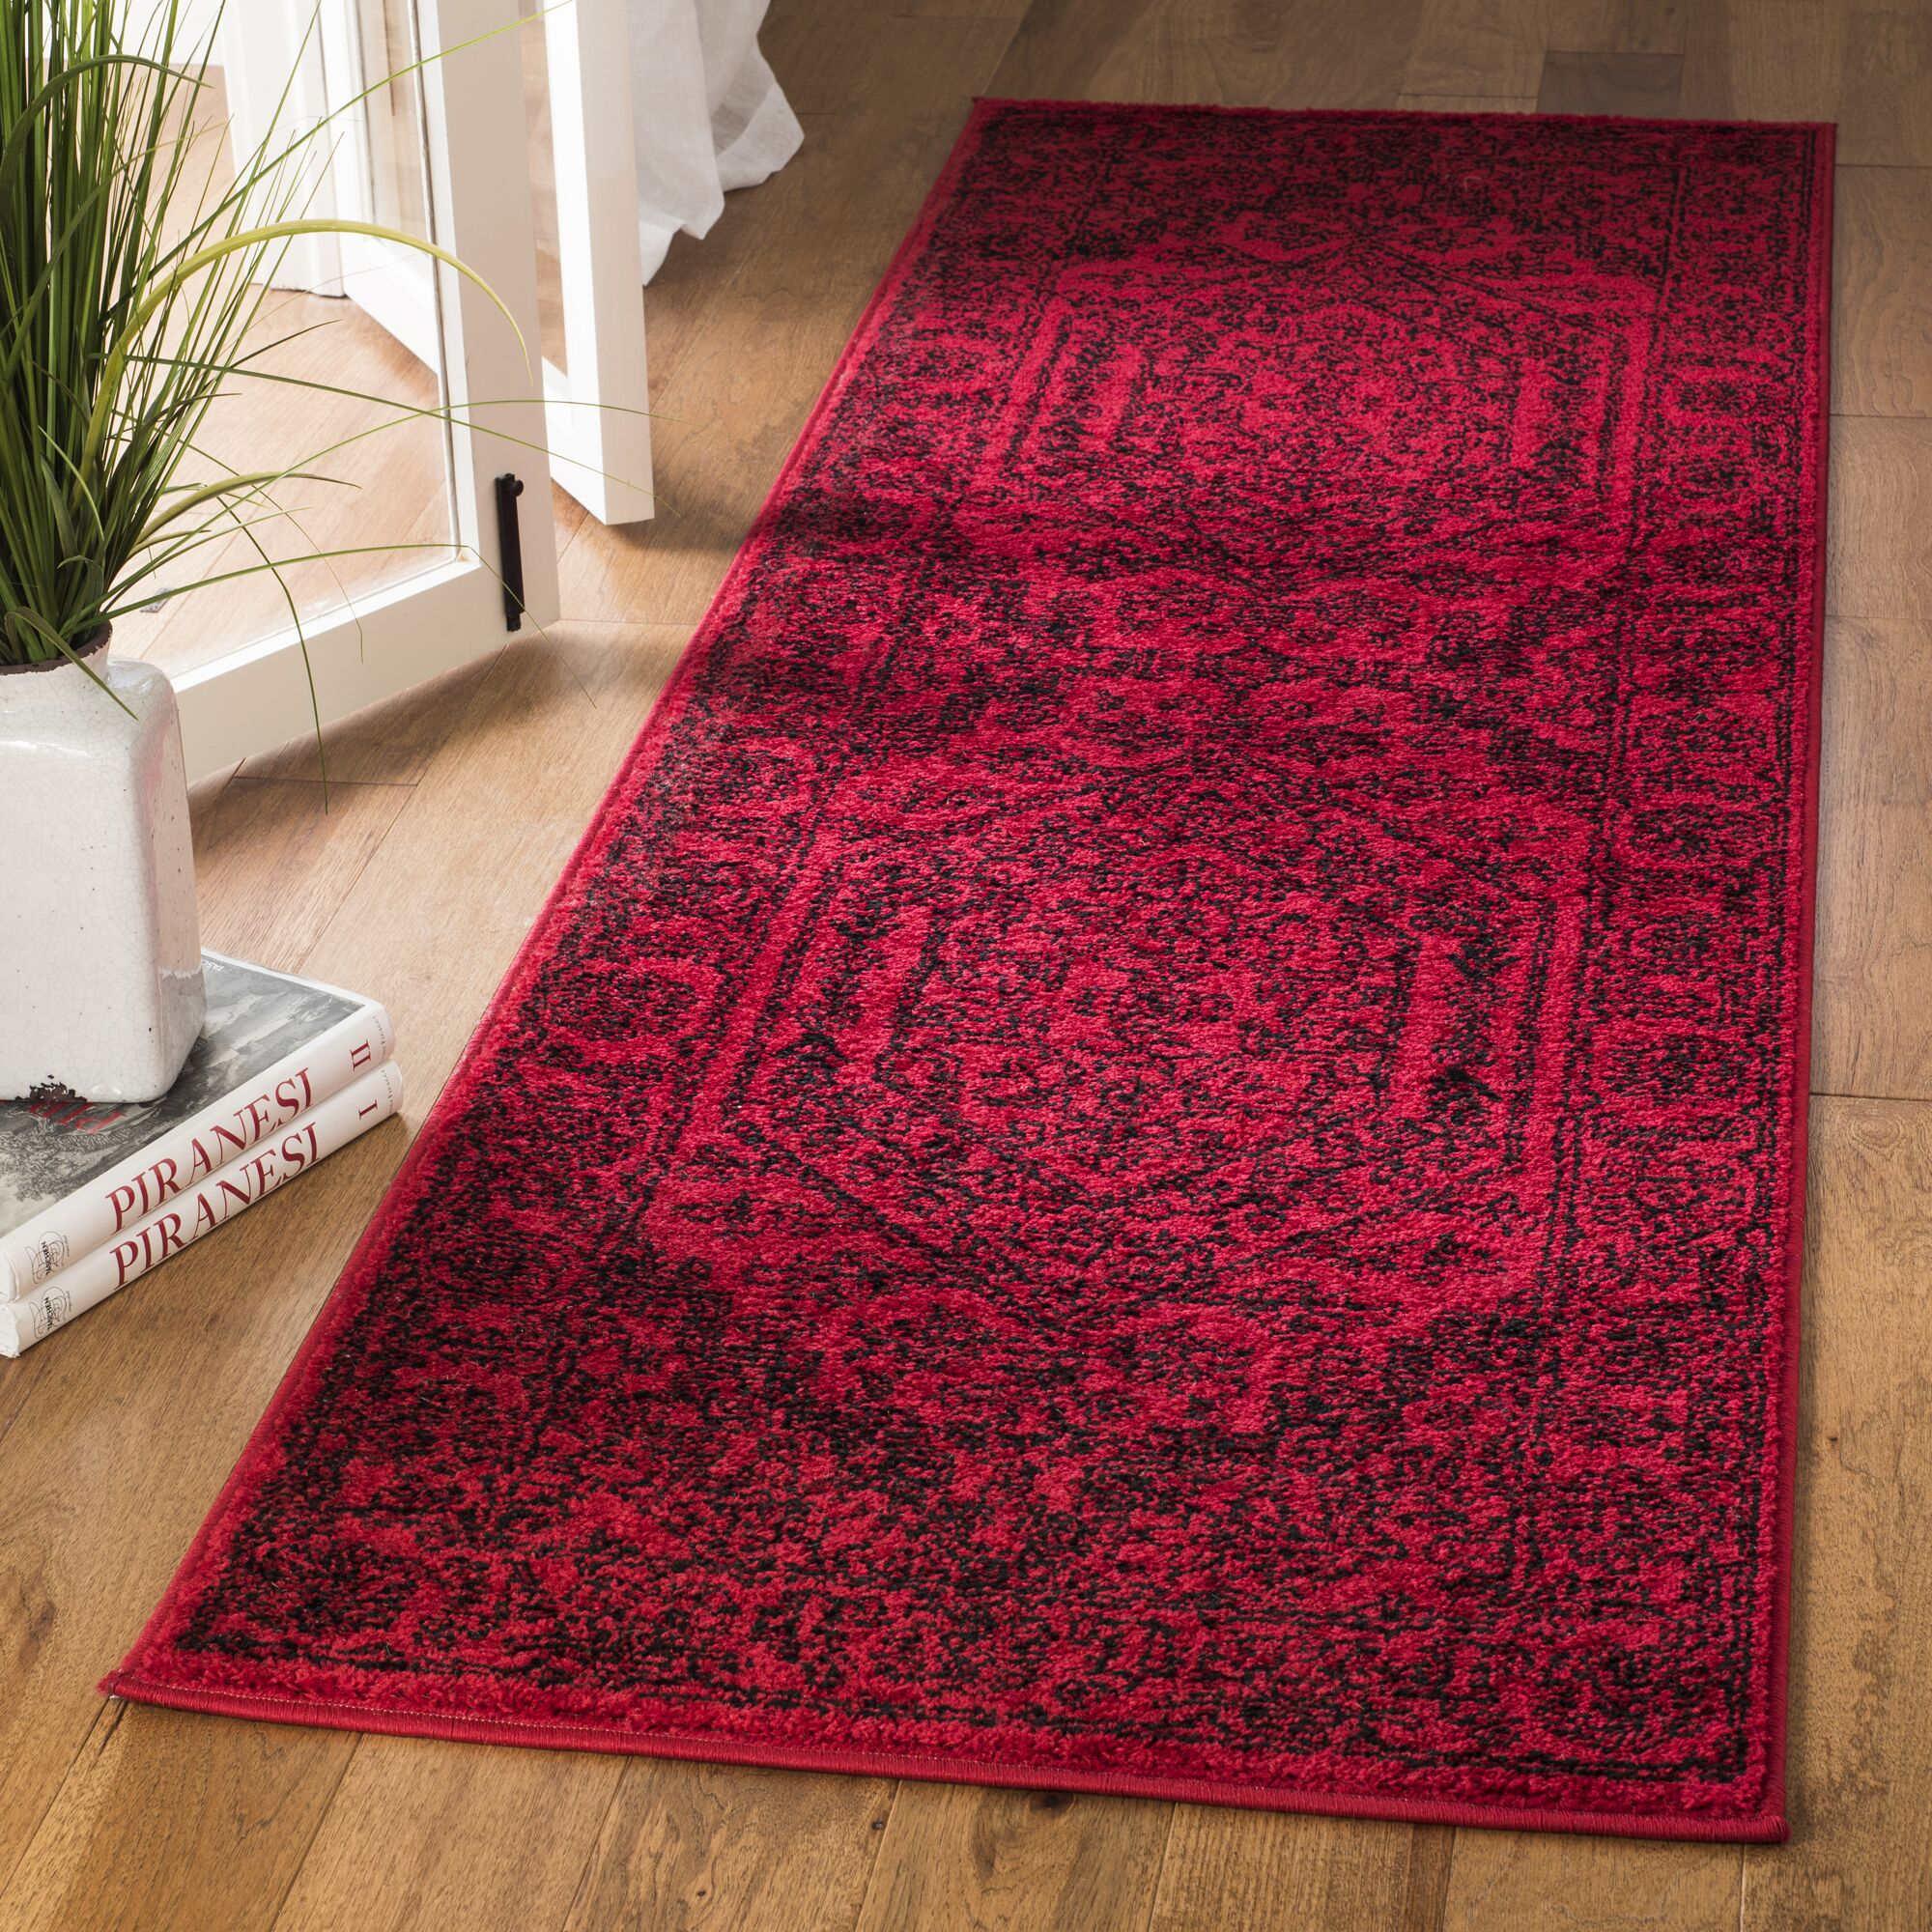 Ebenezer Red/Black Area Rug Rug Size: Runner 2'6